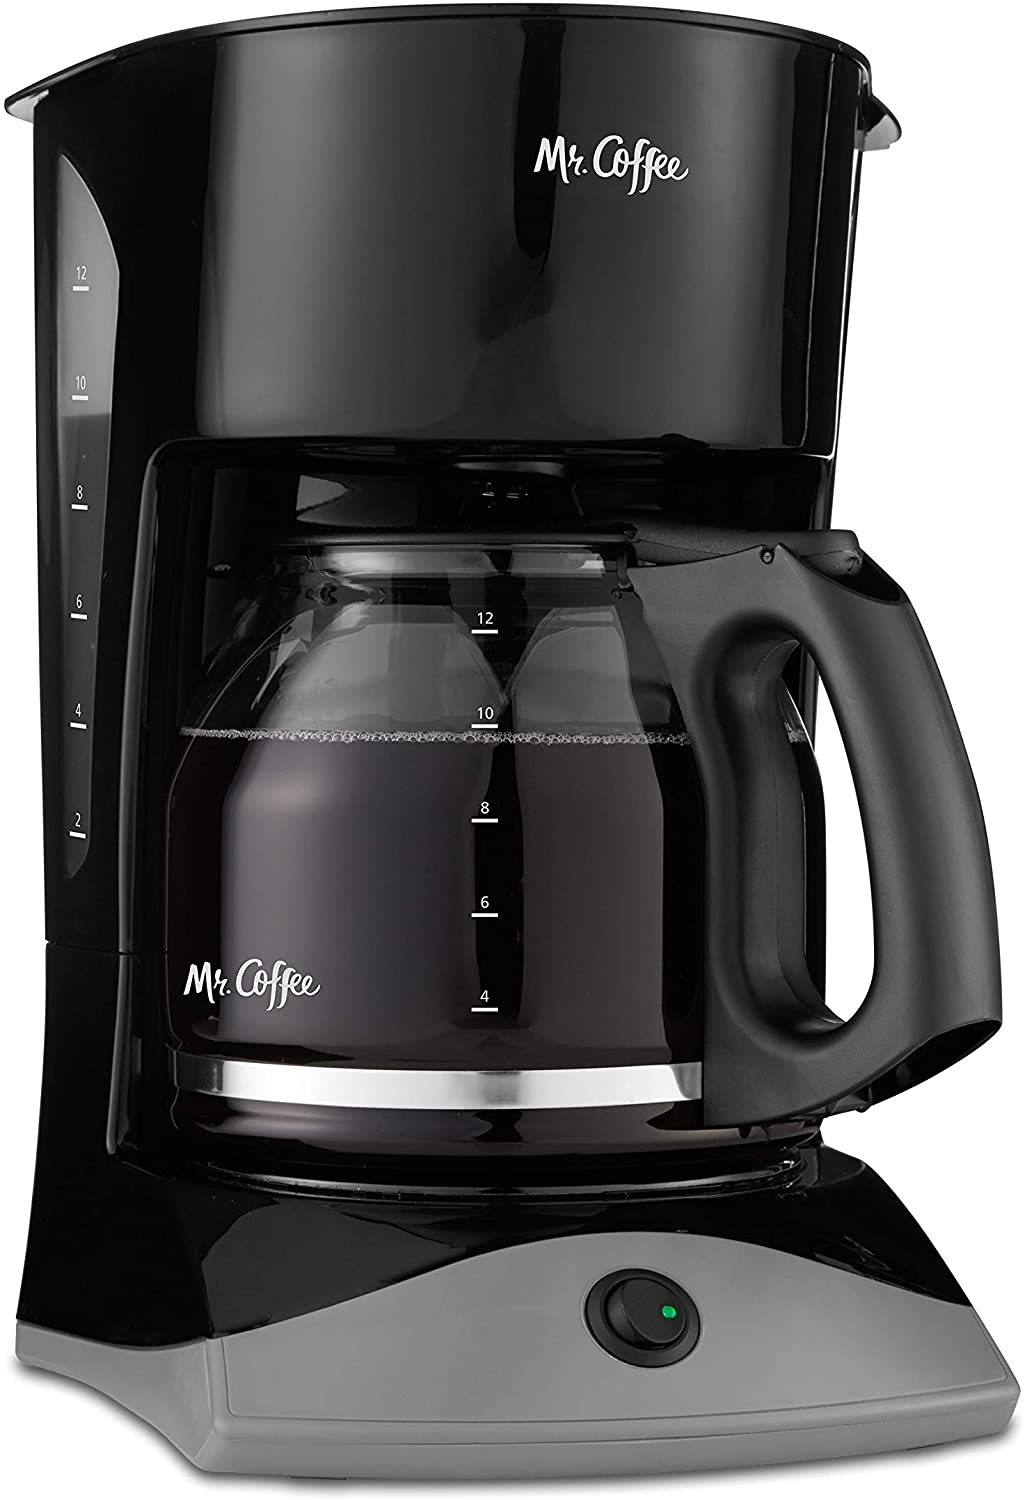 Mr. Coffee SK13-RB 12-Cup Coffee Maker